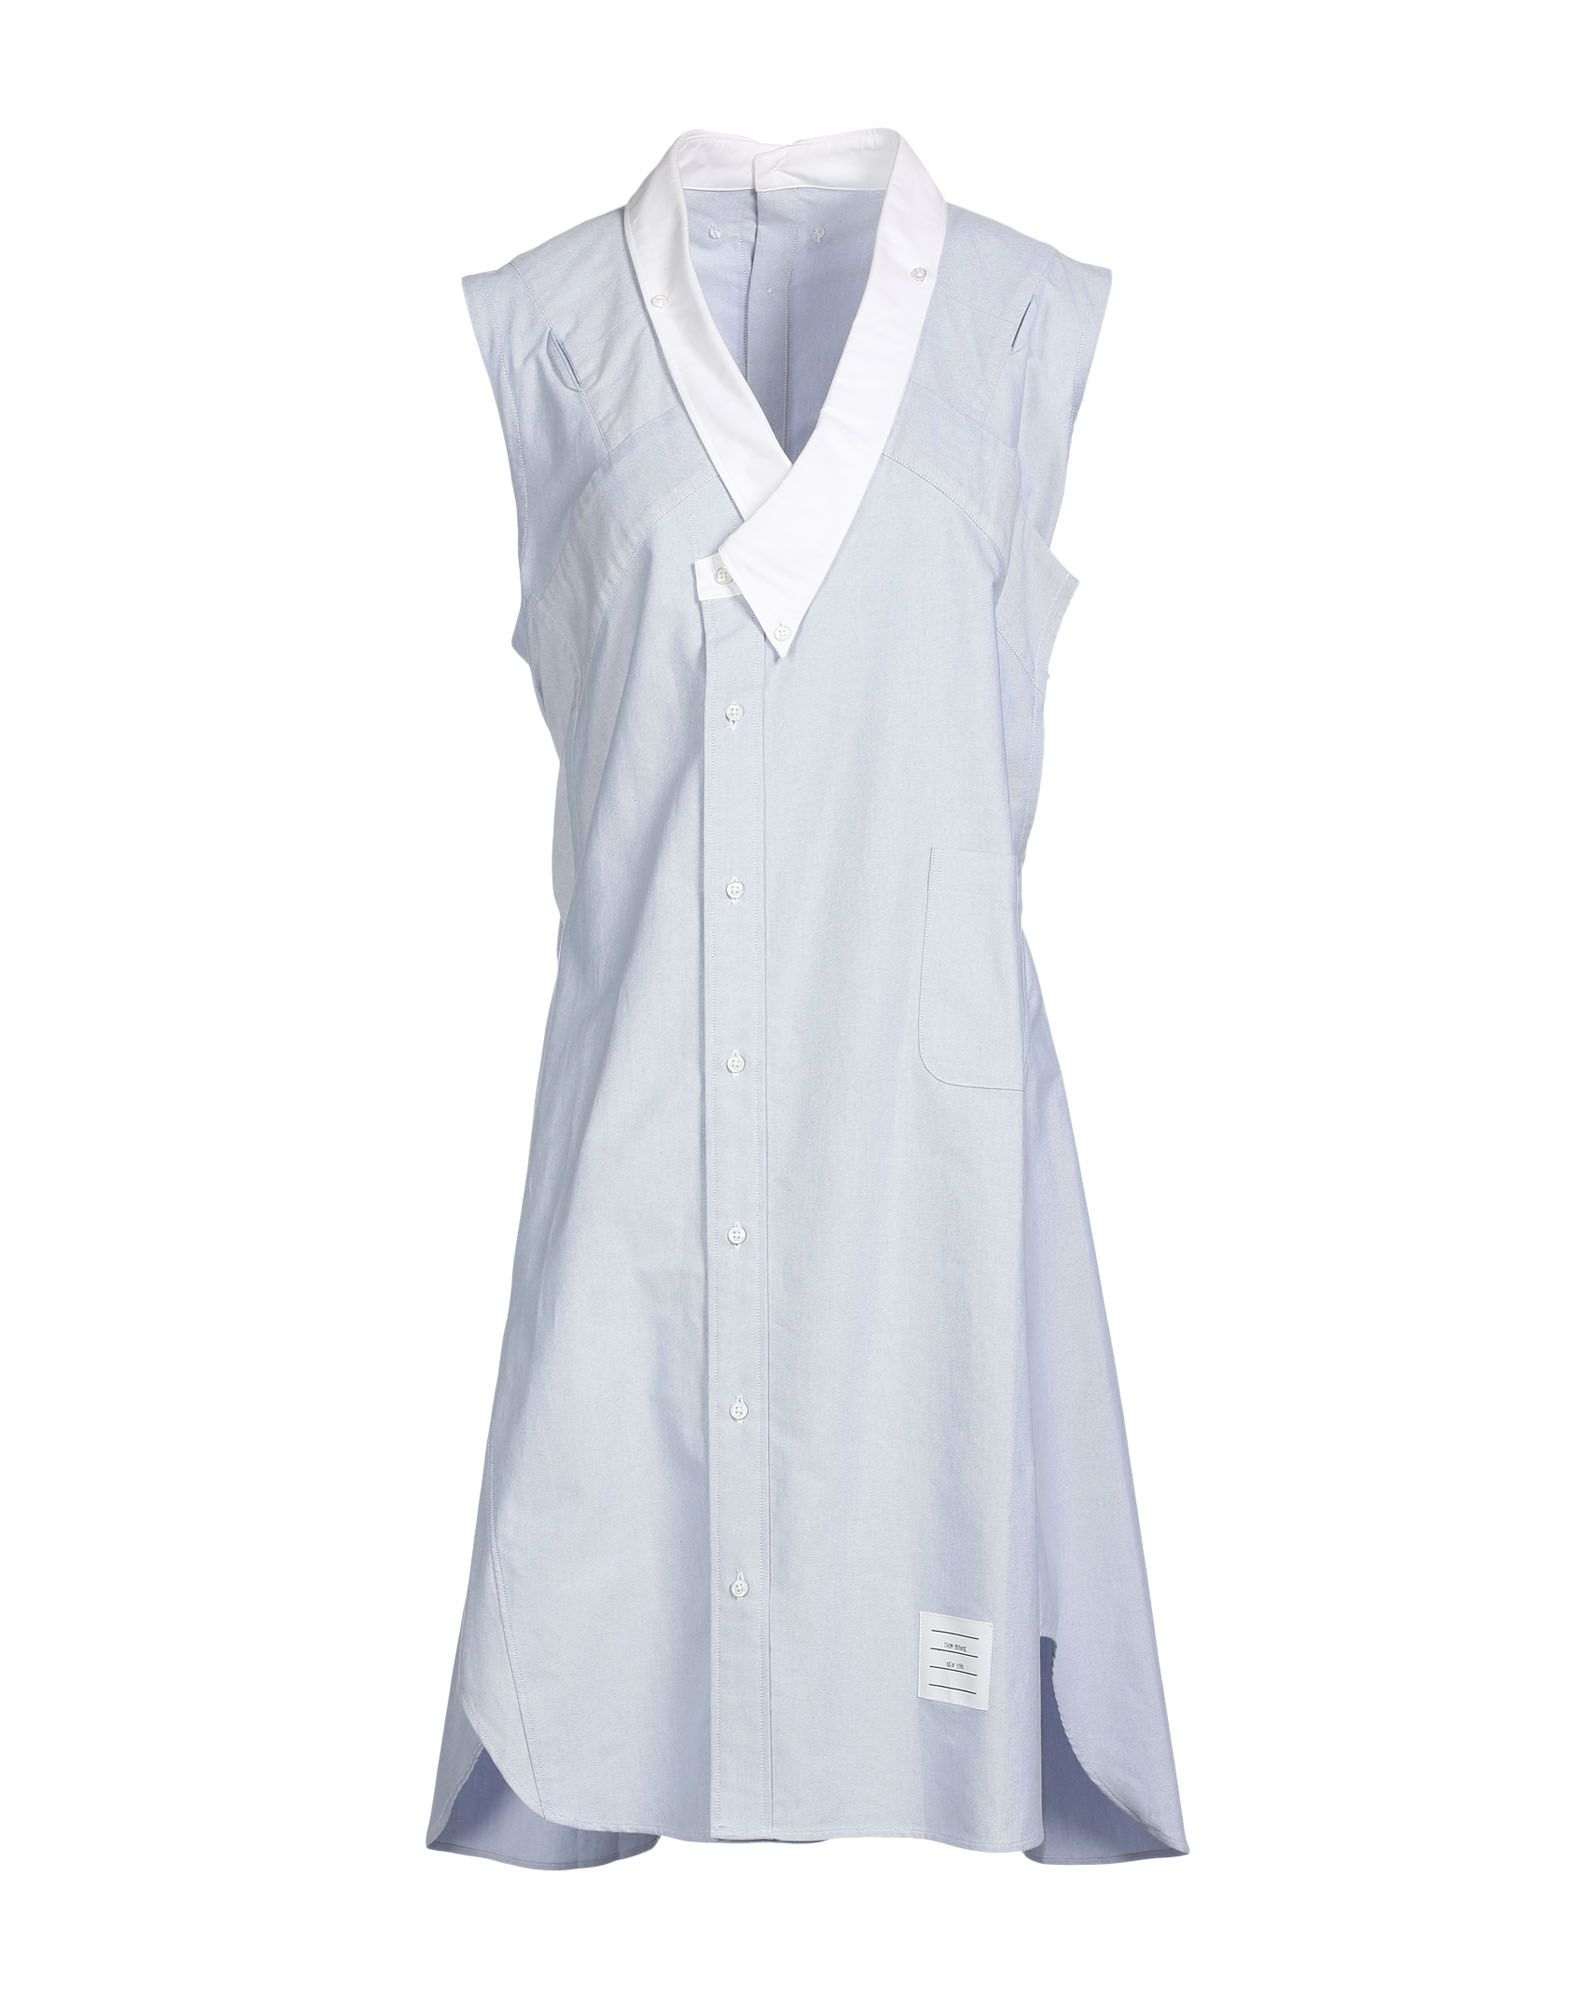 THOM BROWNE Knee-length dresses. plain weave, button-down collar, sleeveless, basic solid color, shirt dress. 100% Cotton